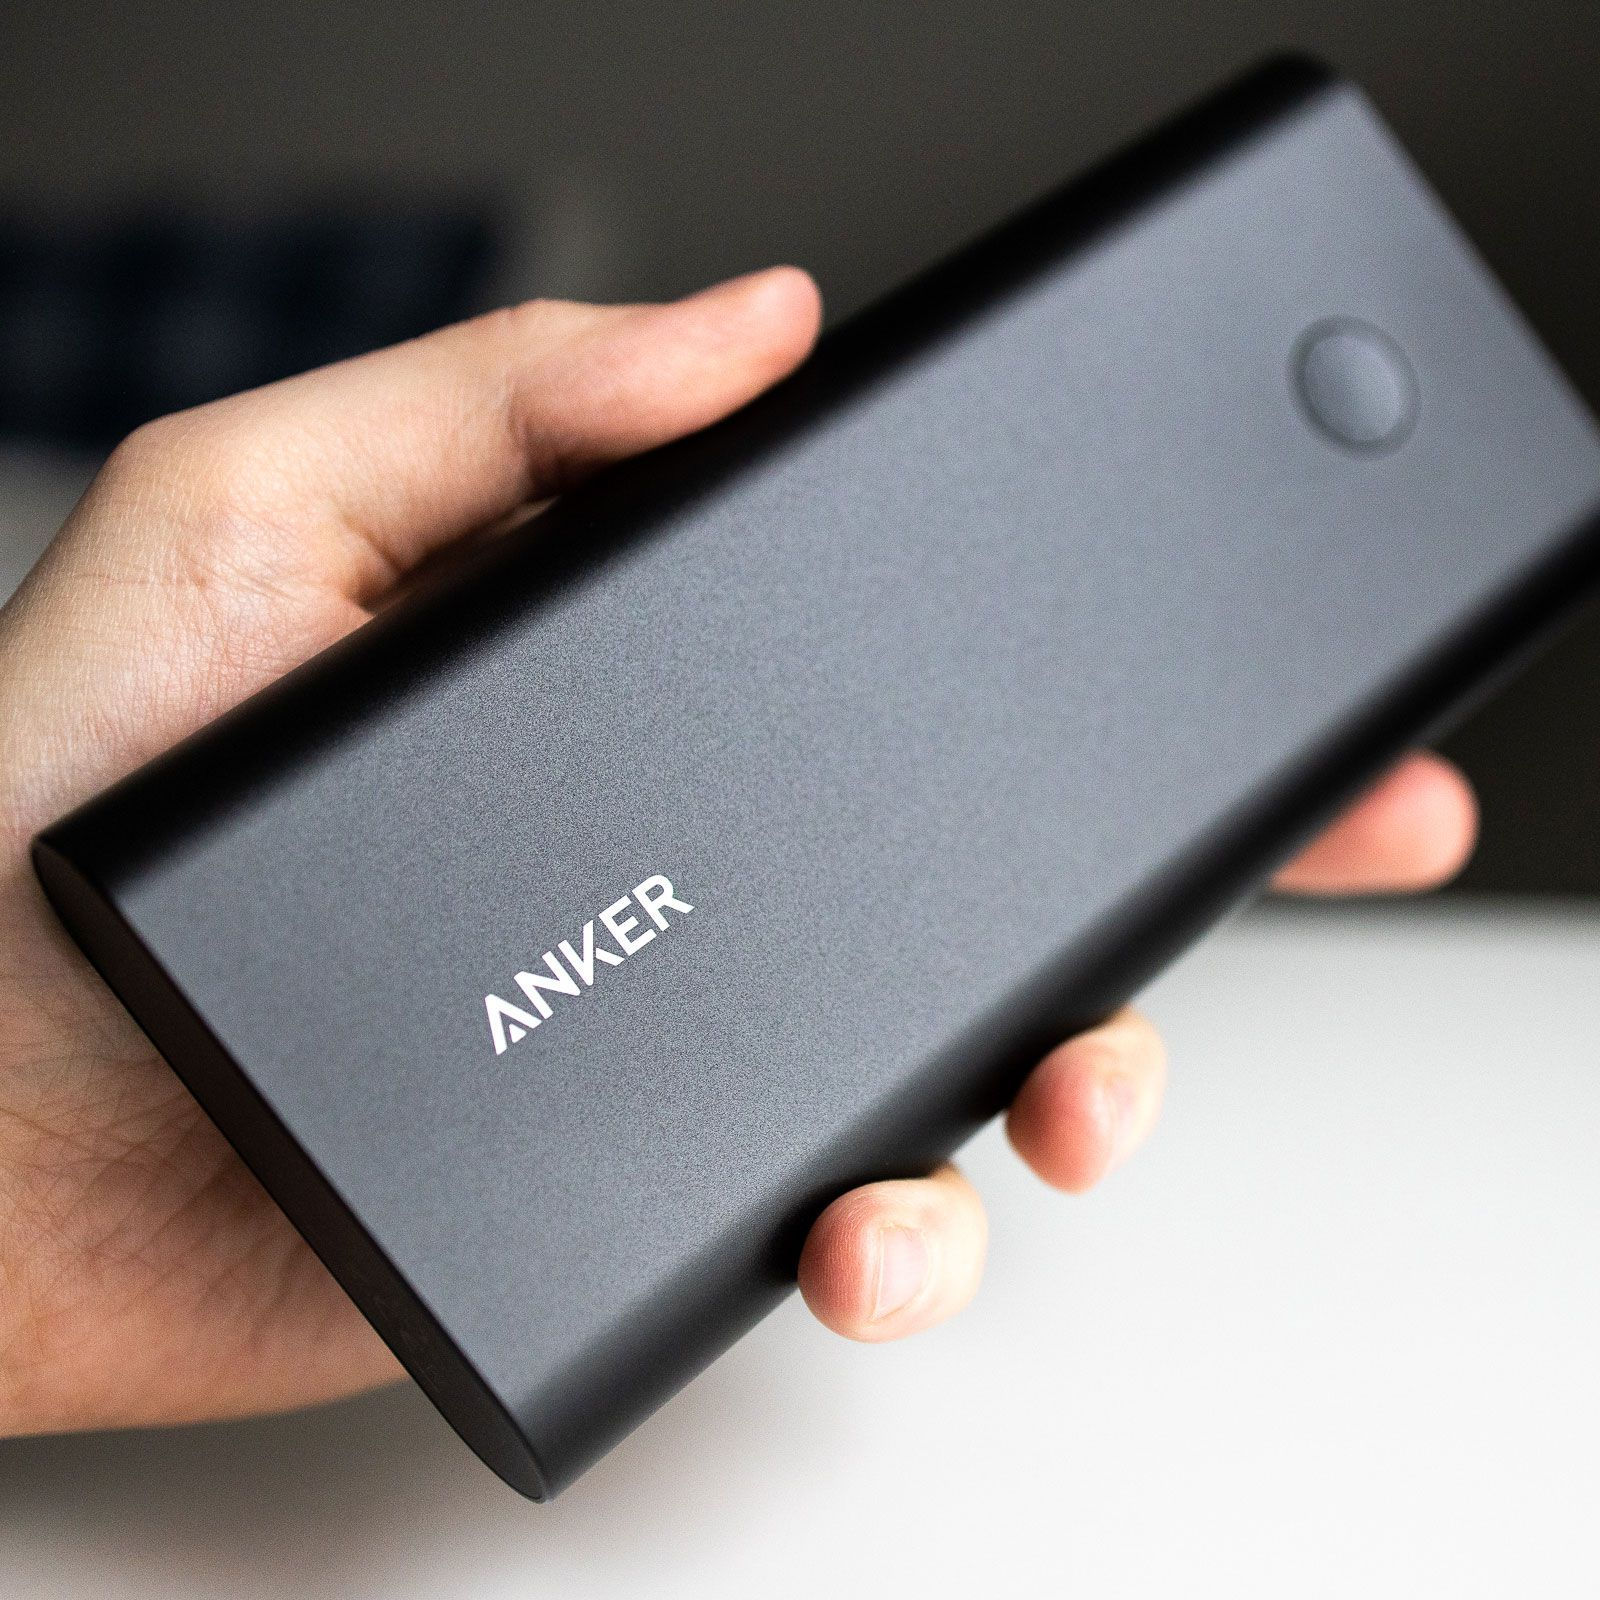 Anker PowerCore+ 26800 Battery Pack Bundle Review